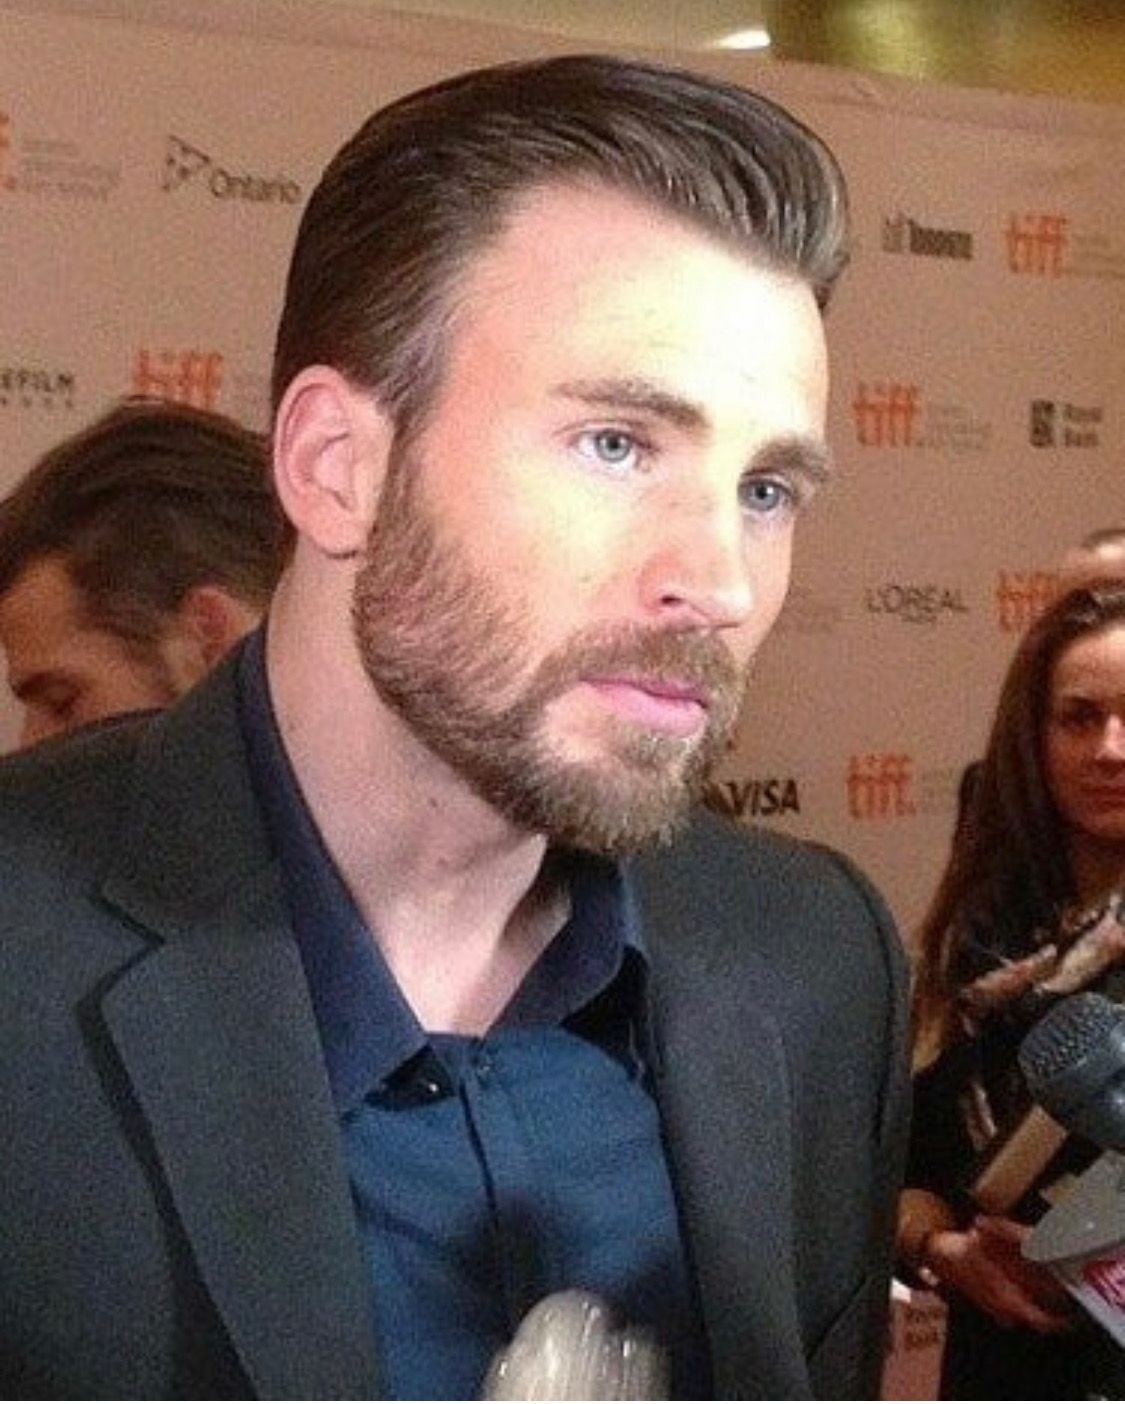 Pin by 💛kt💛 on chris evans Chris evans, Christopher